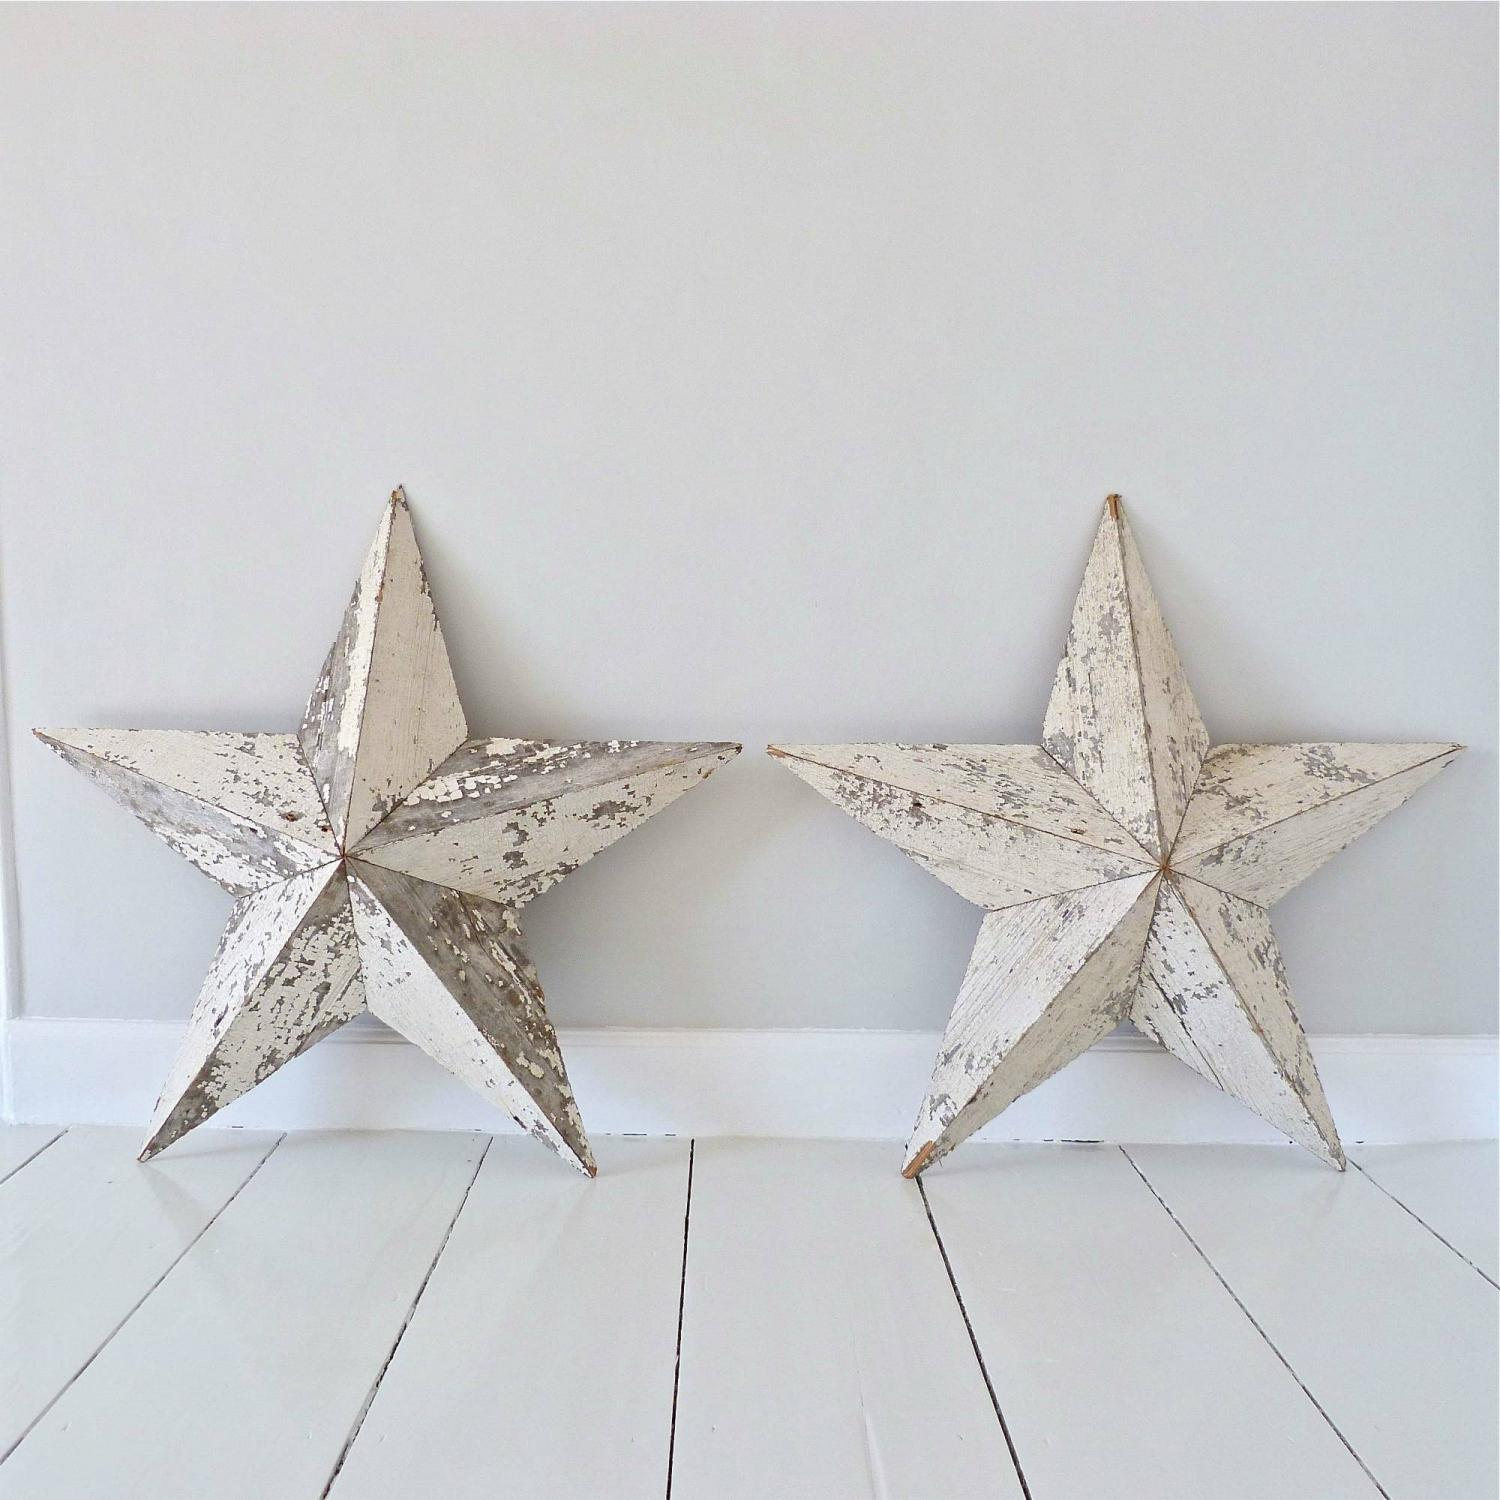 PAIR OF LARGE WOODEN STARS WITH OLD PAINT